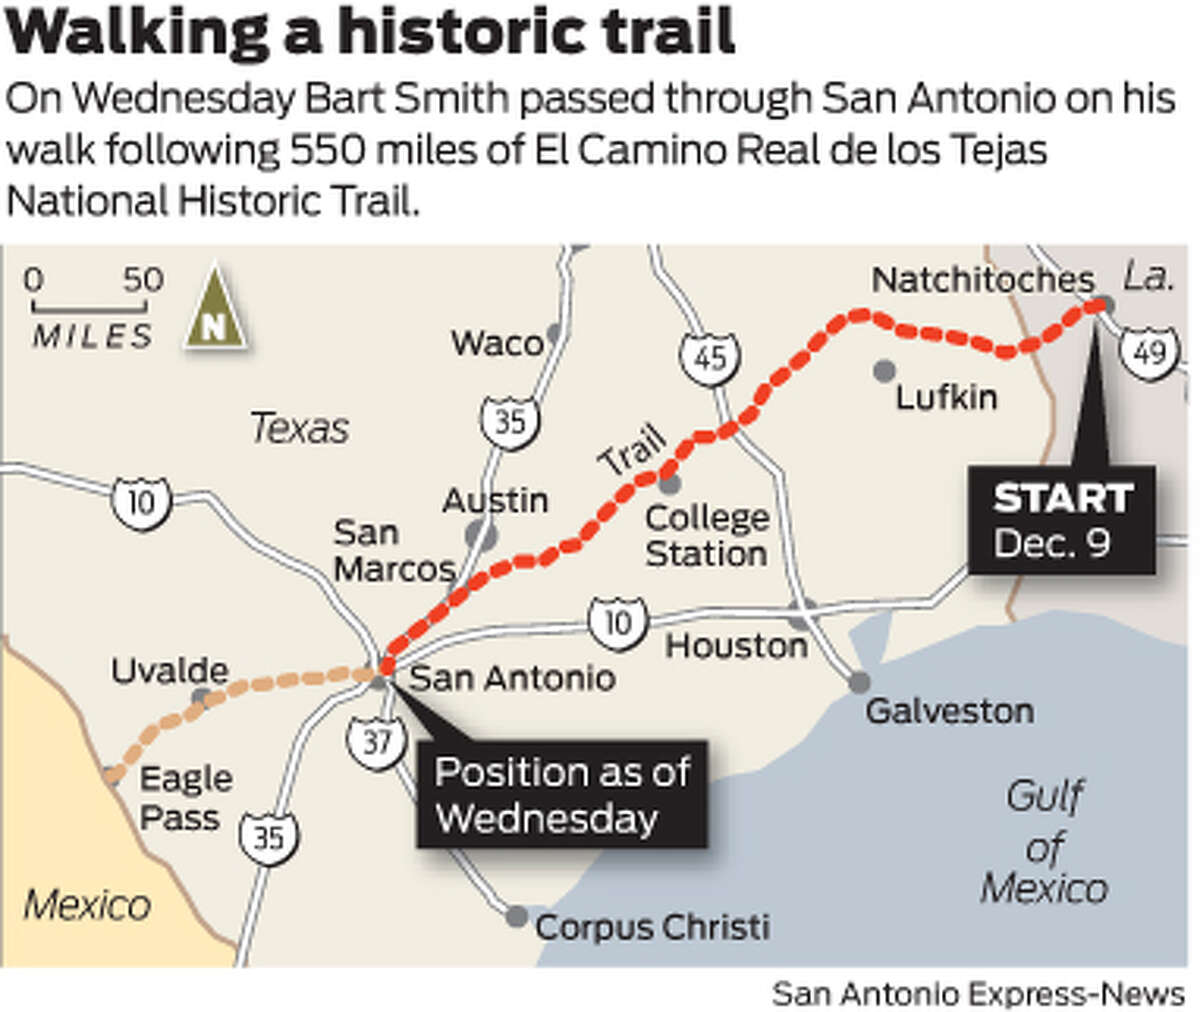 Walking a historic trail On Wednesday Bart Smith passed through San Antonio on his walk following 550 miles of El Camino Real de los Tejas National Historic Trail.